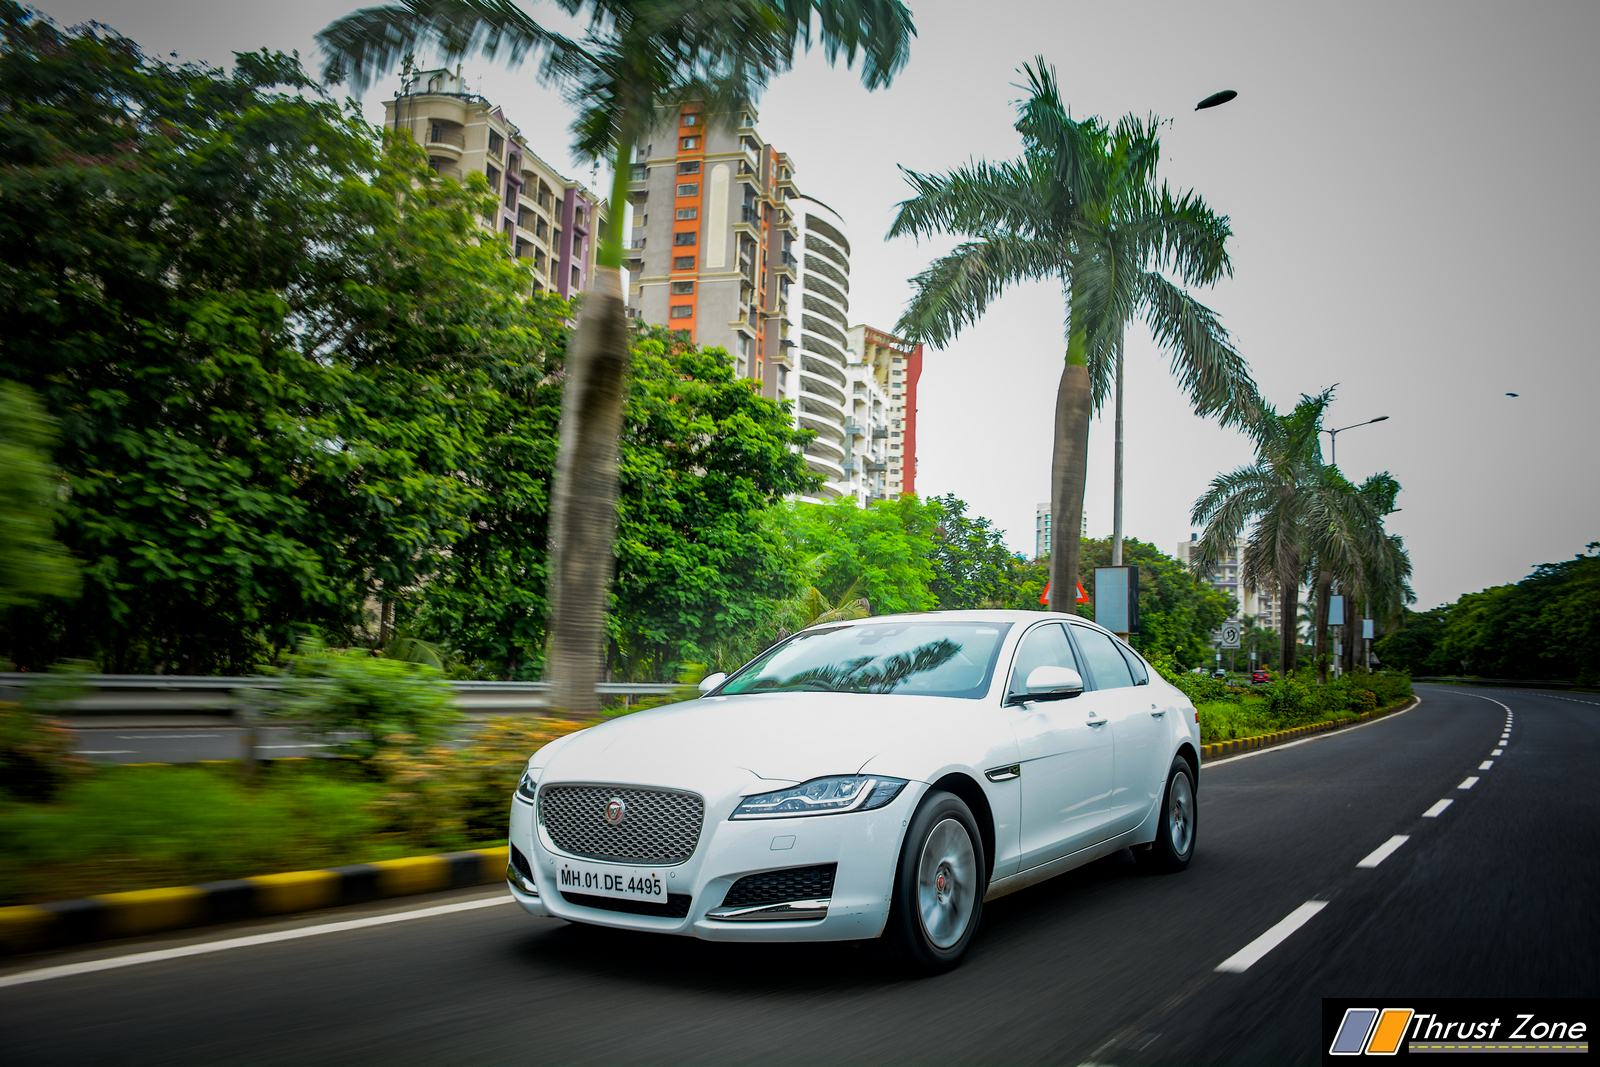 2019-Jaguar-XF-Petrol-prestige-review-15